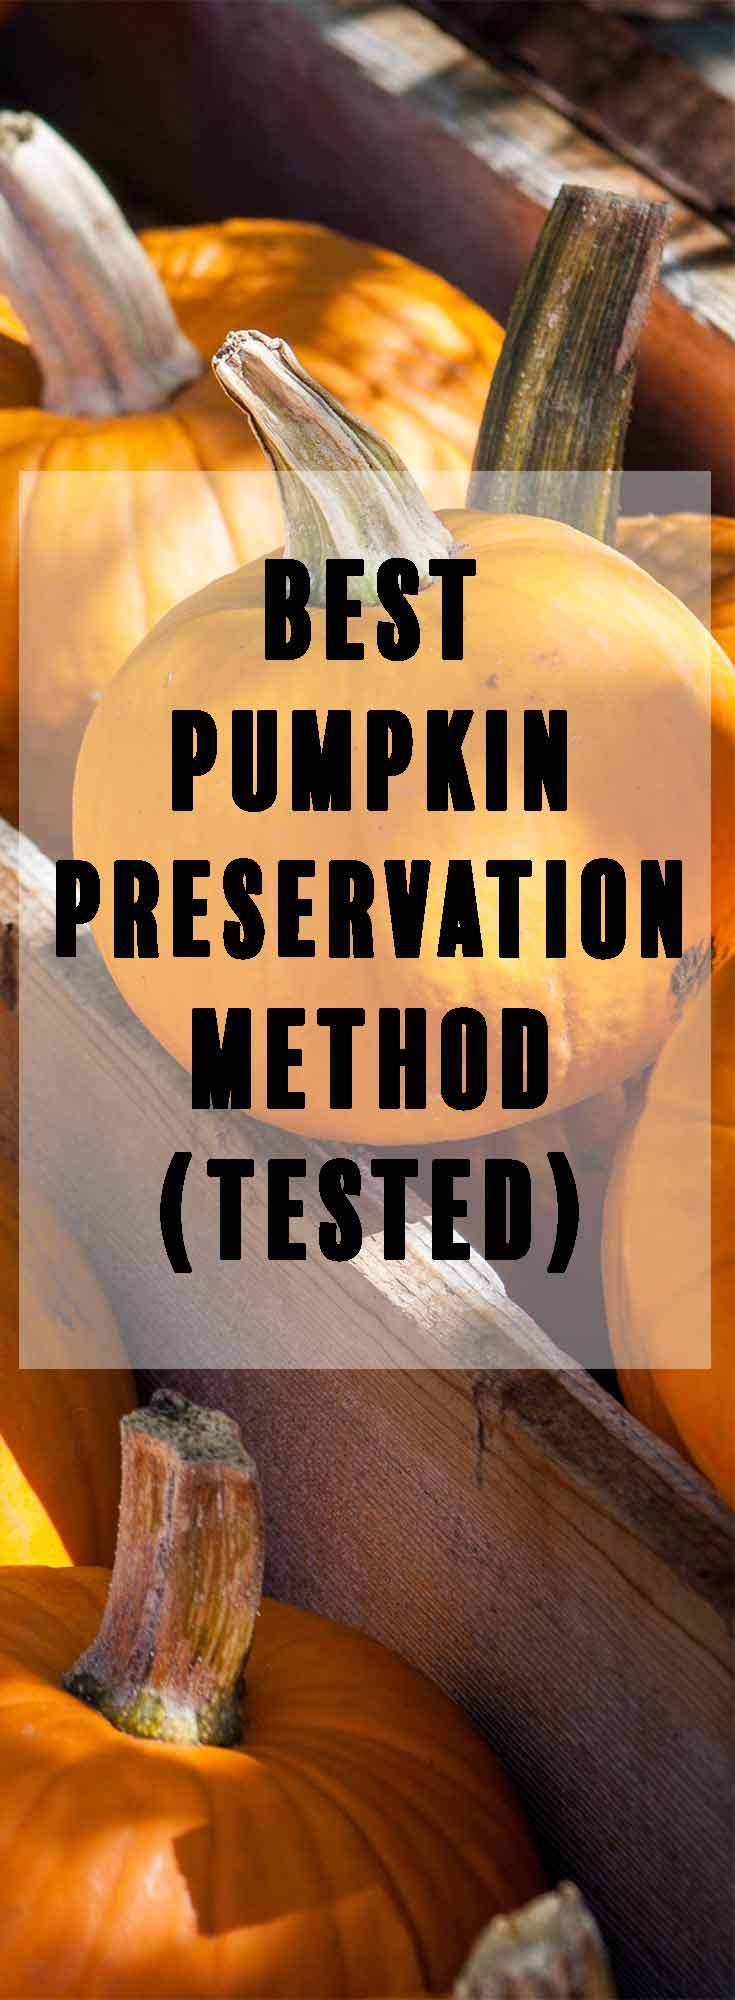 Mold and mildew can cause a pumpkin to rot too quickly. Use this 1 step trick to keep your pumpkin looking good for up to a month!